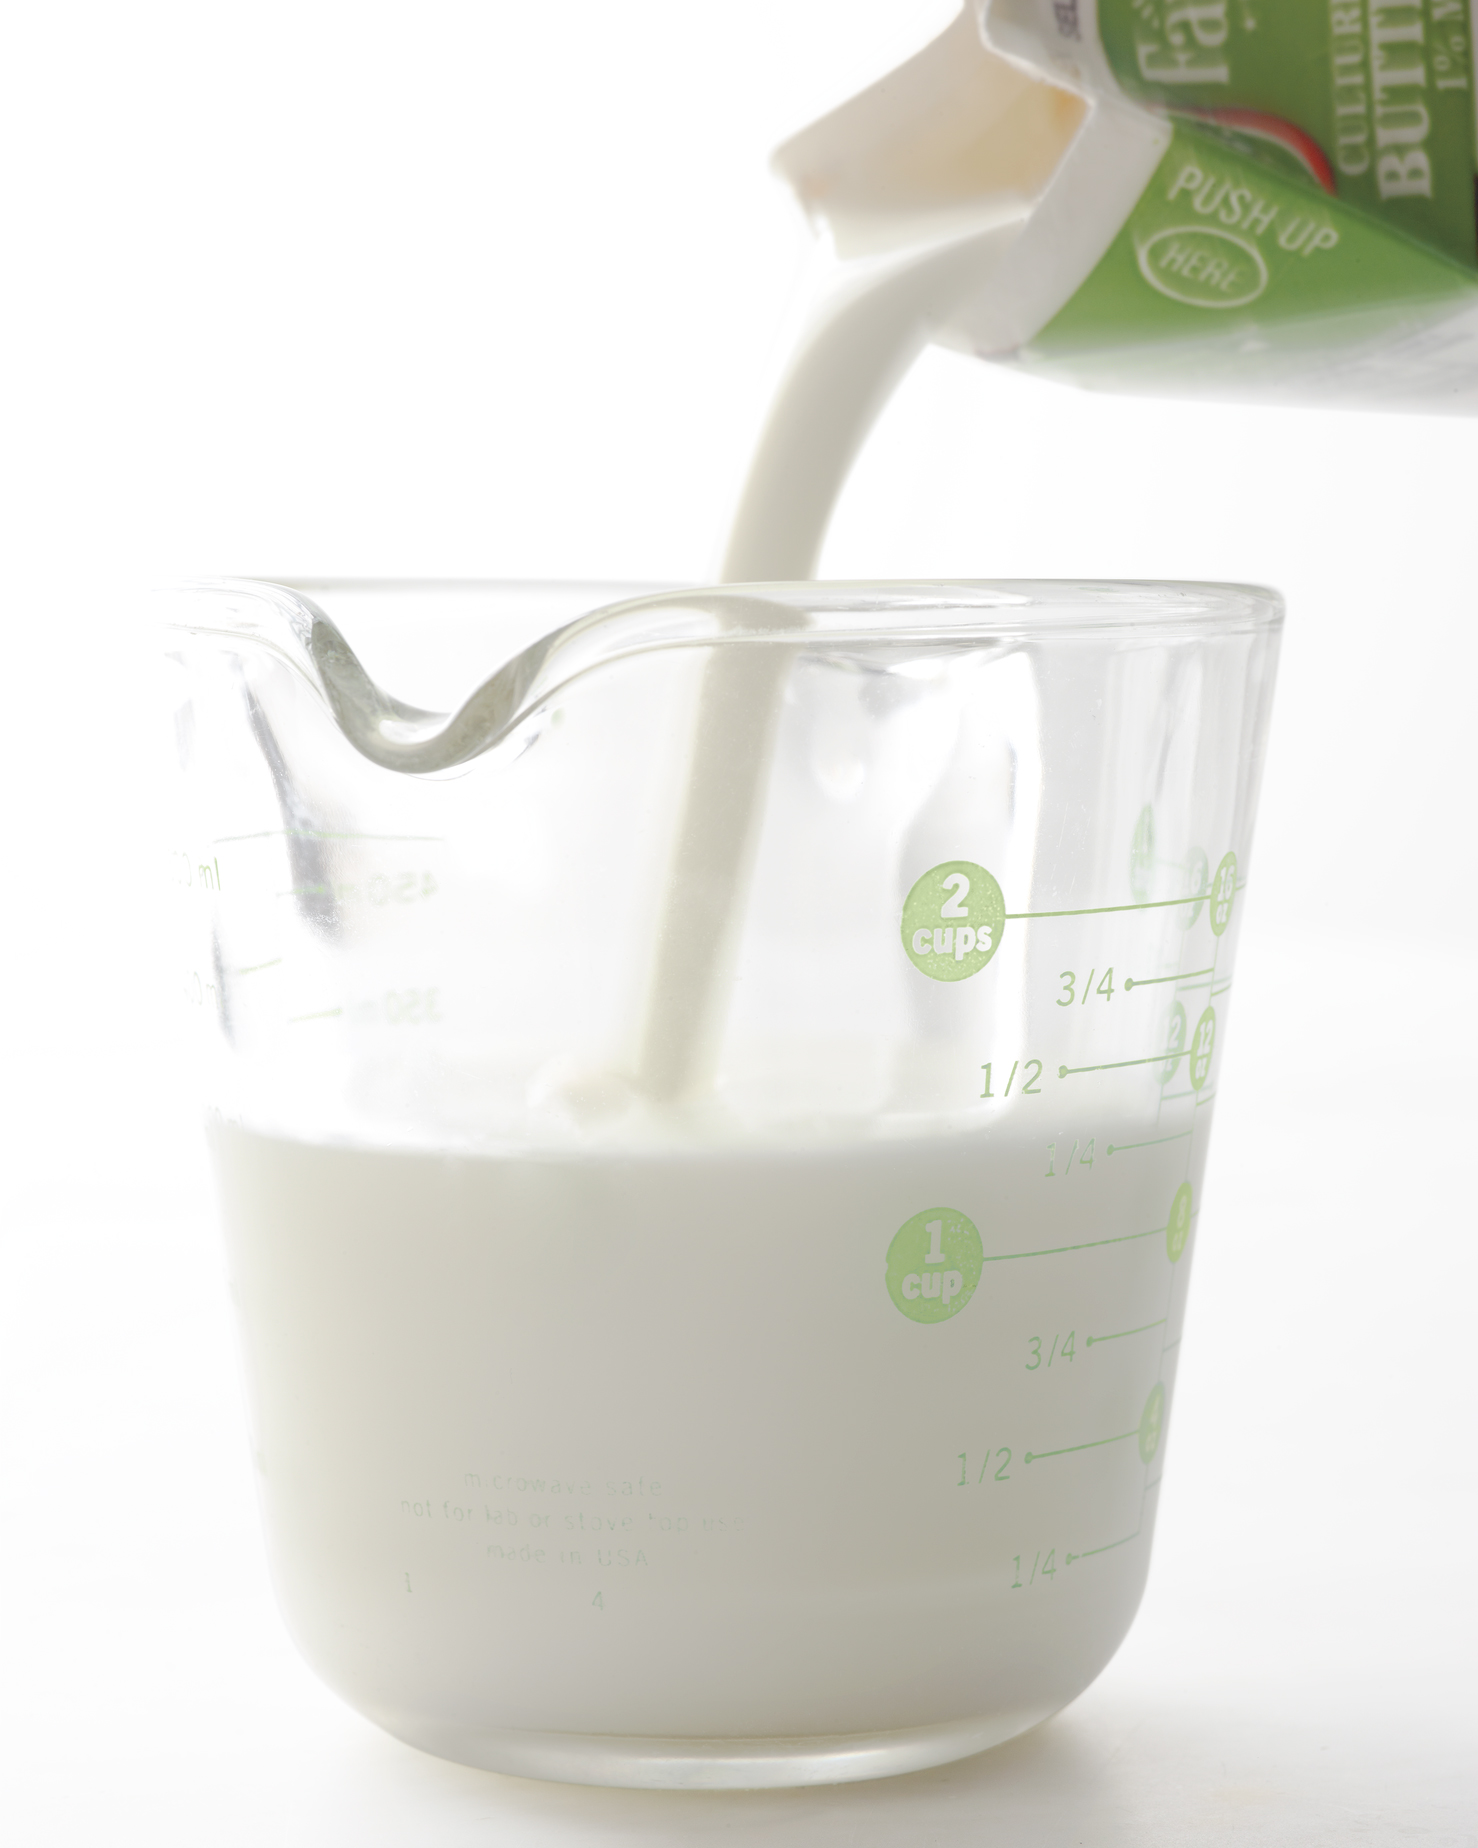 edf-loves-buttermilk-005c-med108875.jpg